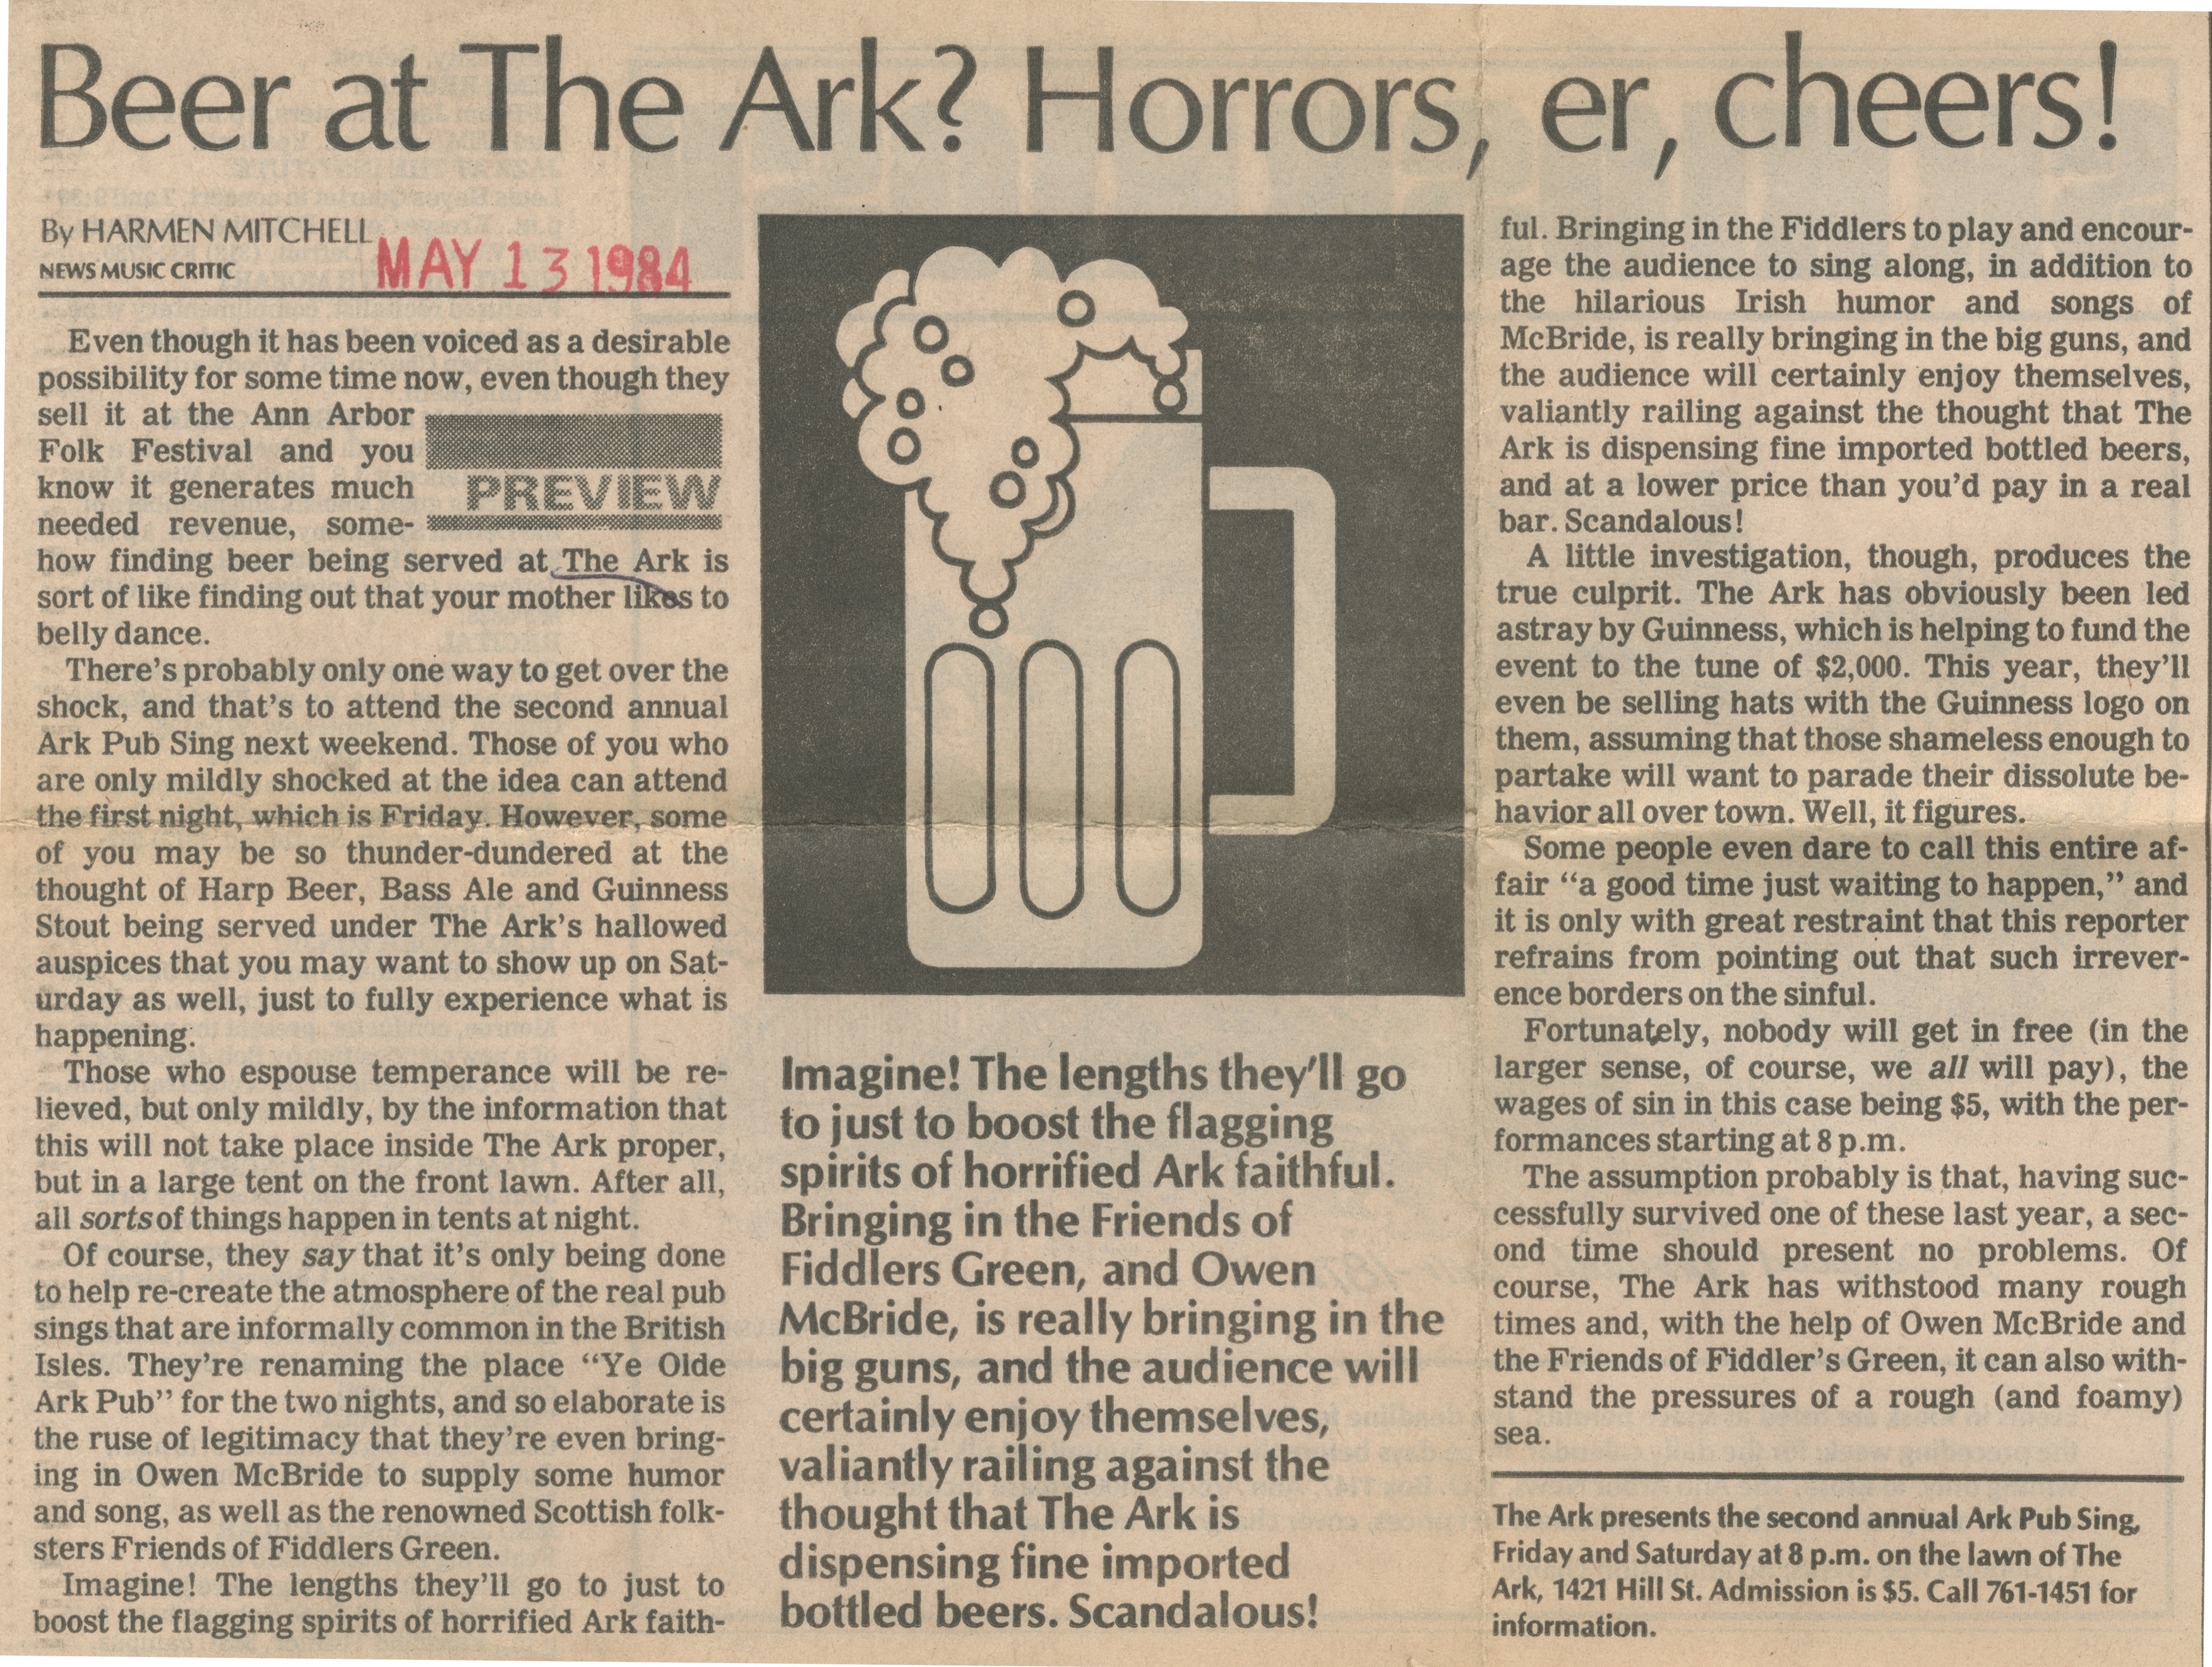 Beer At The Ark? Horrors, er, Cheers! image